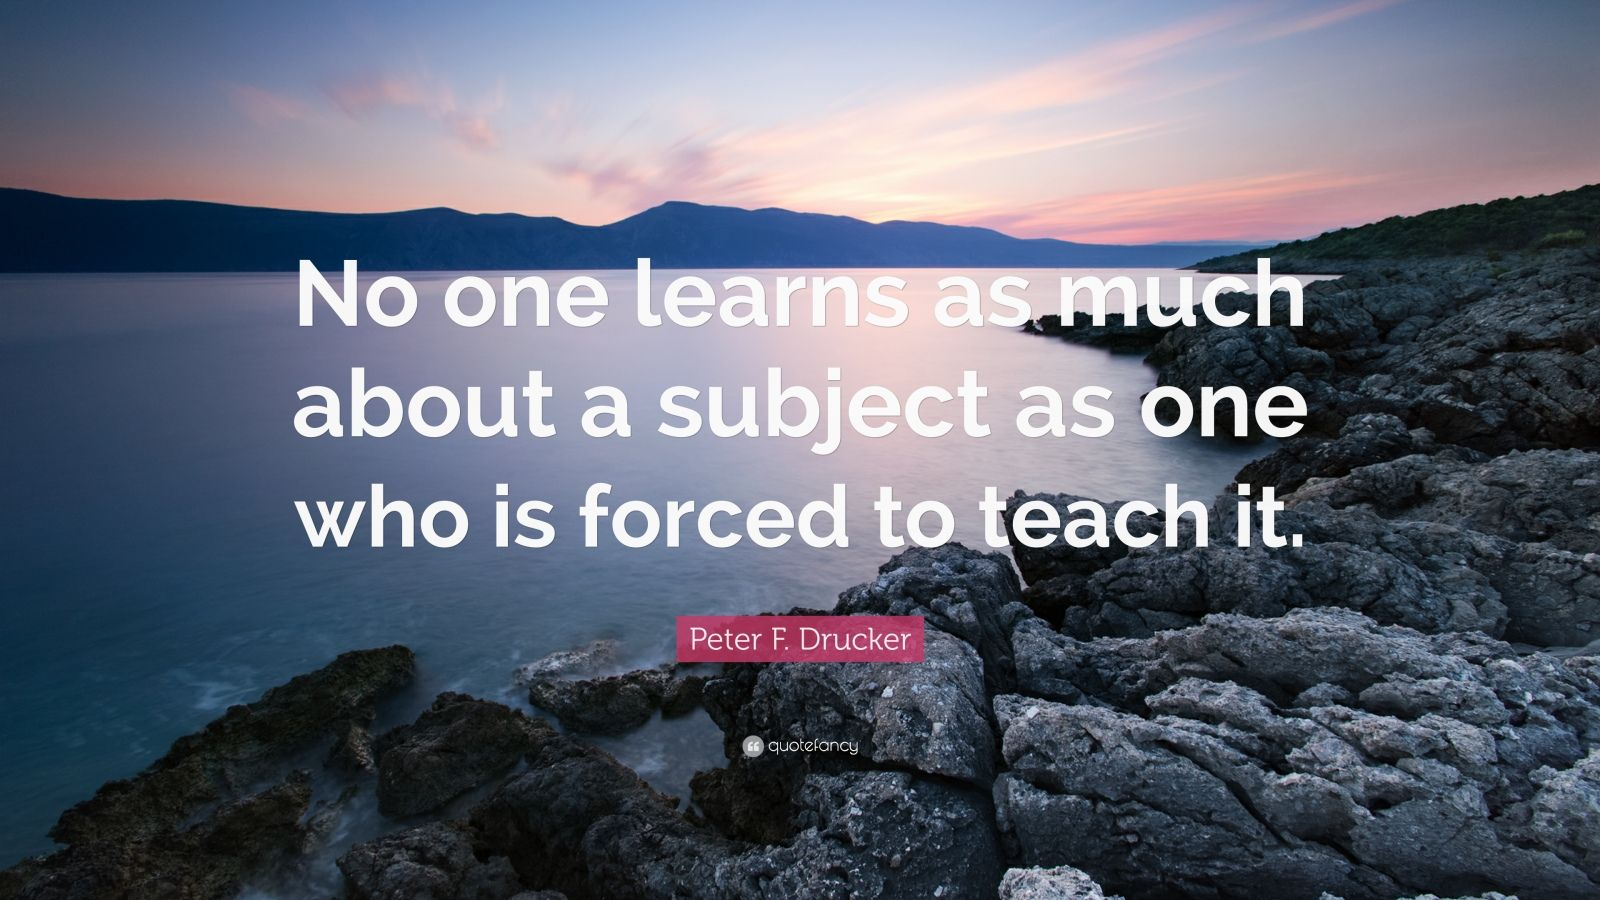 """Peter F. Drucker Quote: """"No one learns as much about a subject as one who is forced to teach it."""""""